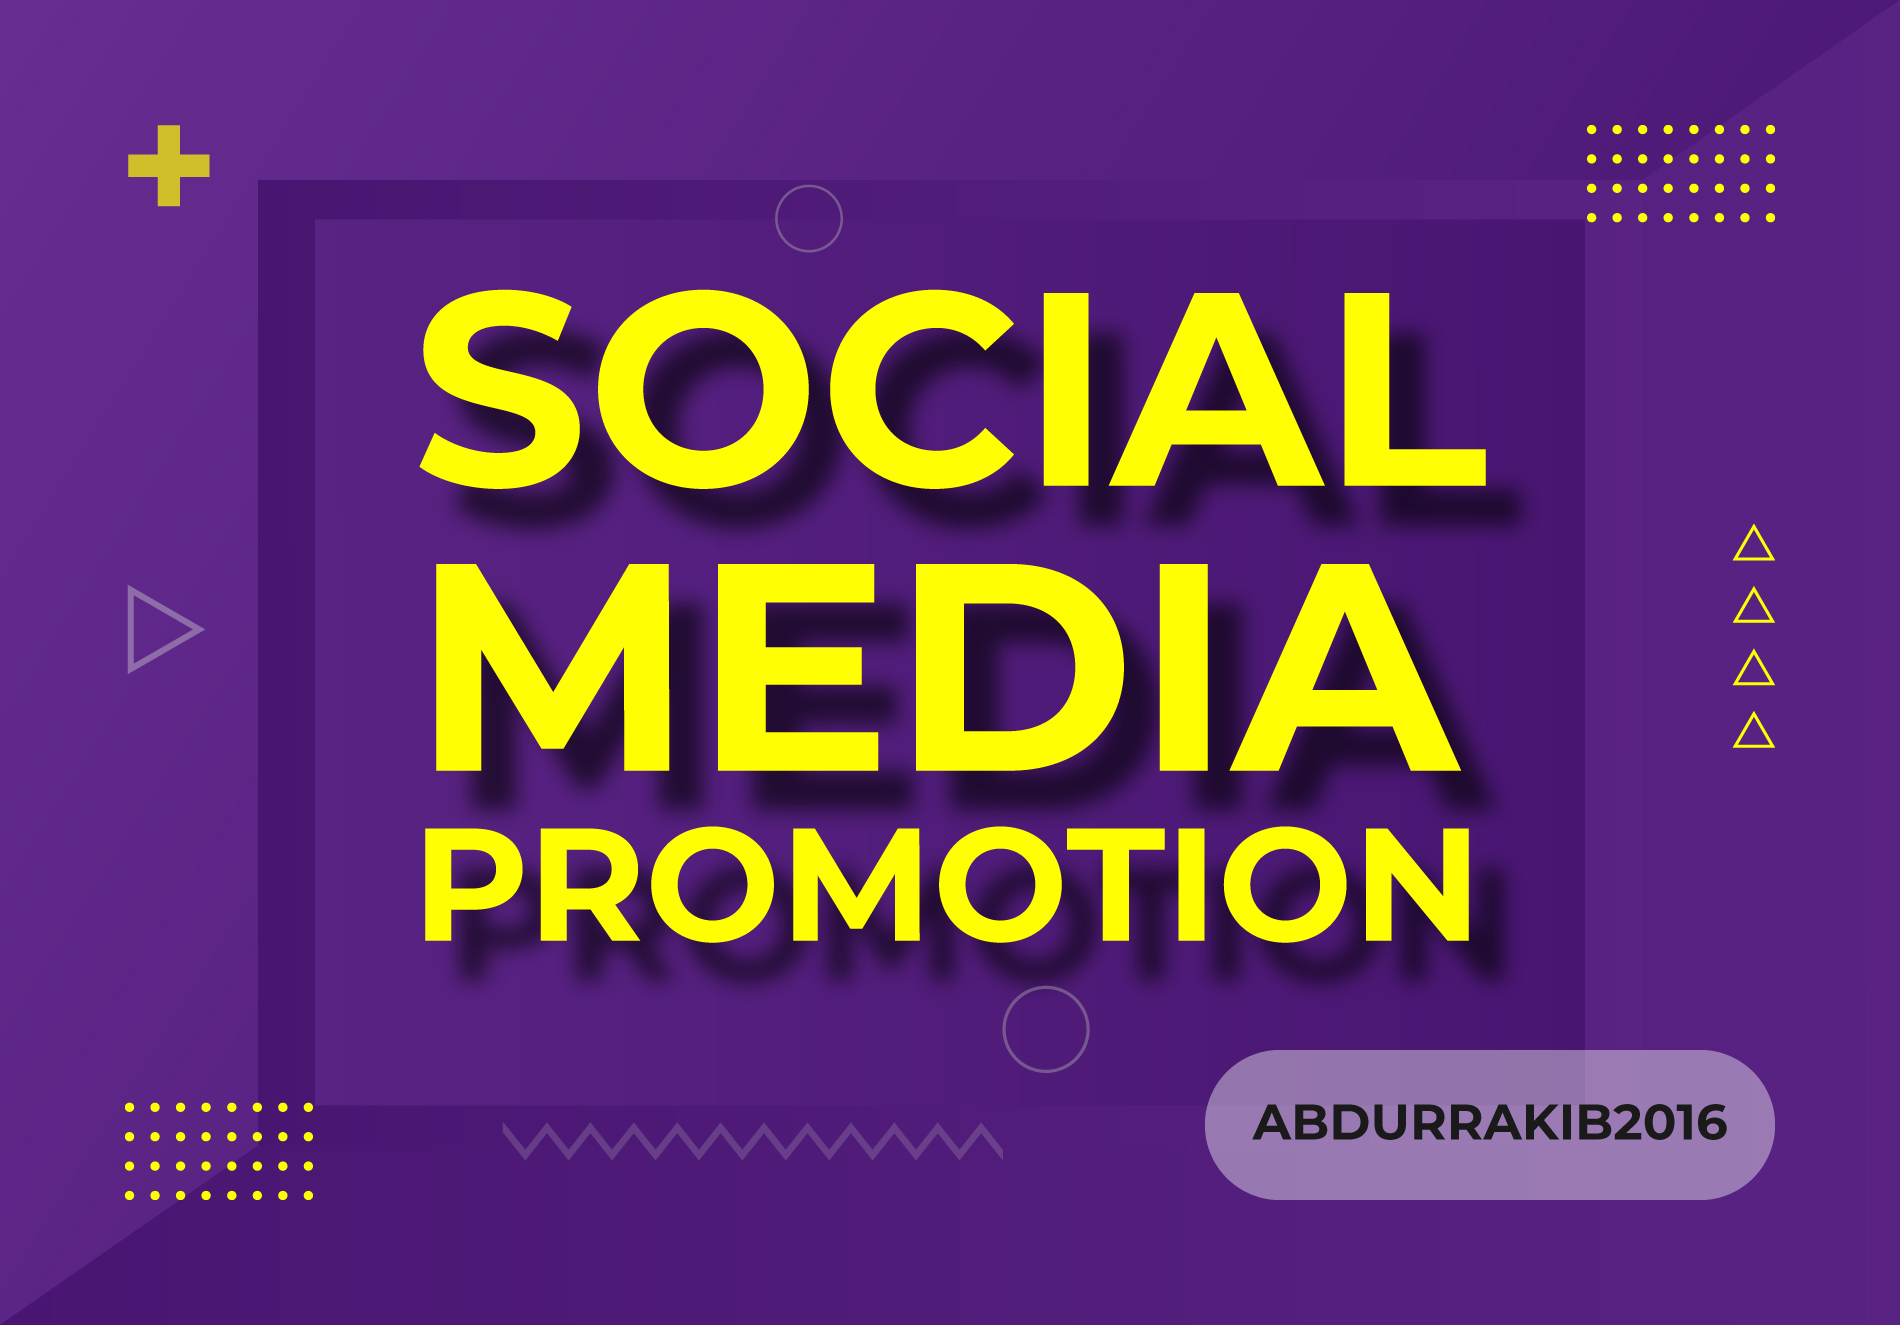 To Get High Quality Social Media Promotion With Fast Delivery